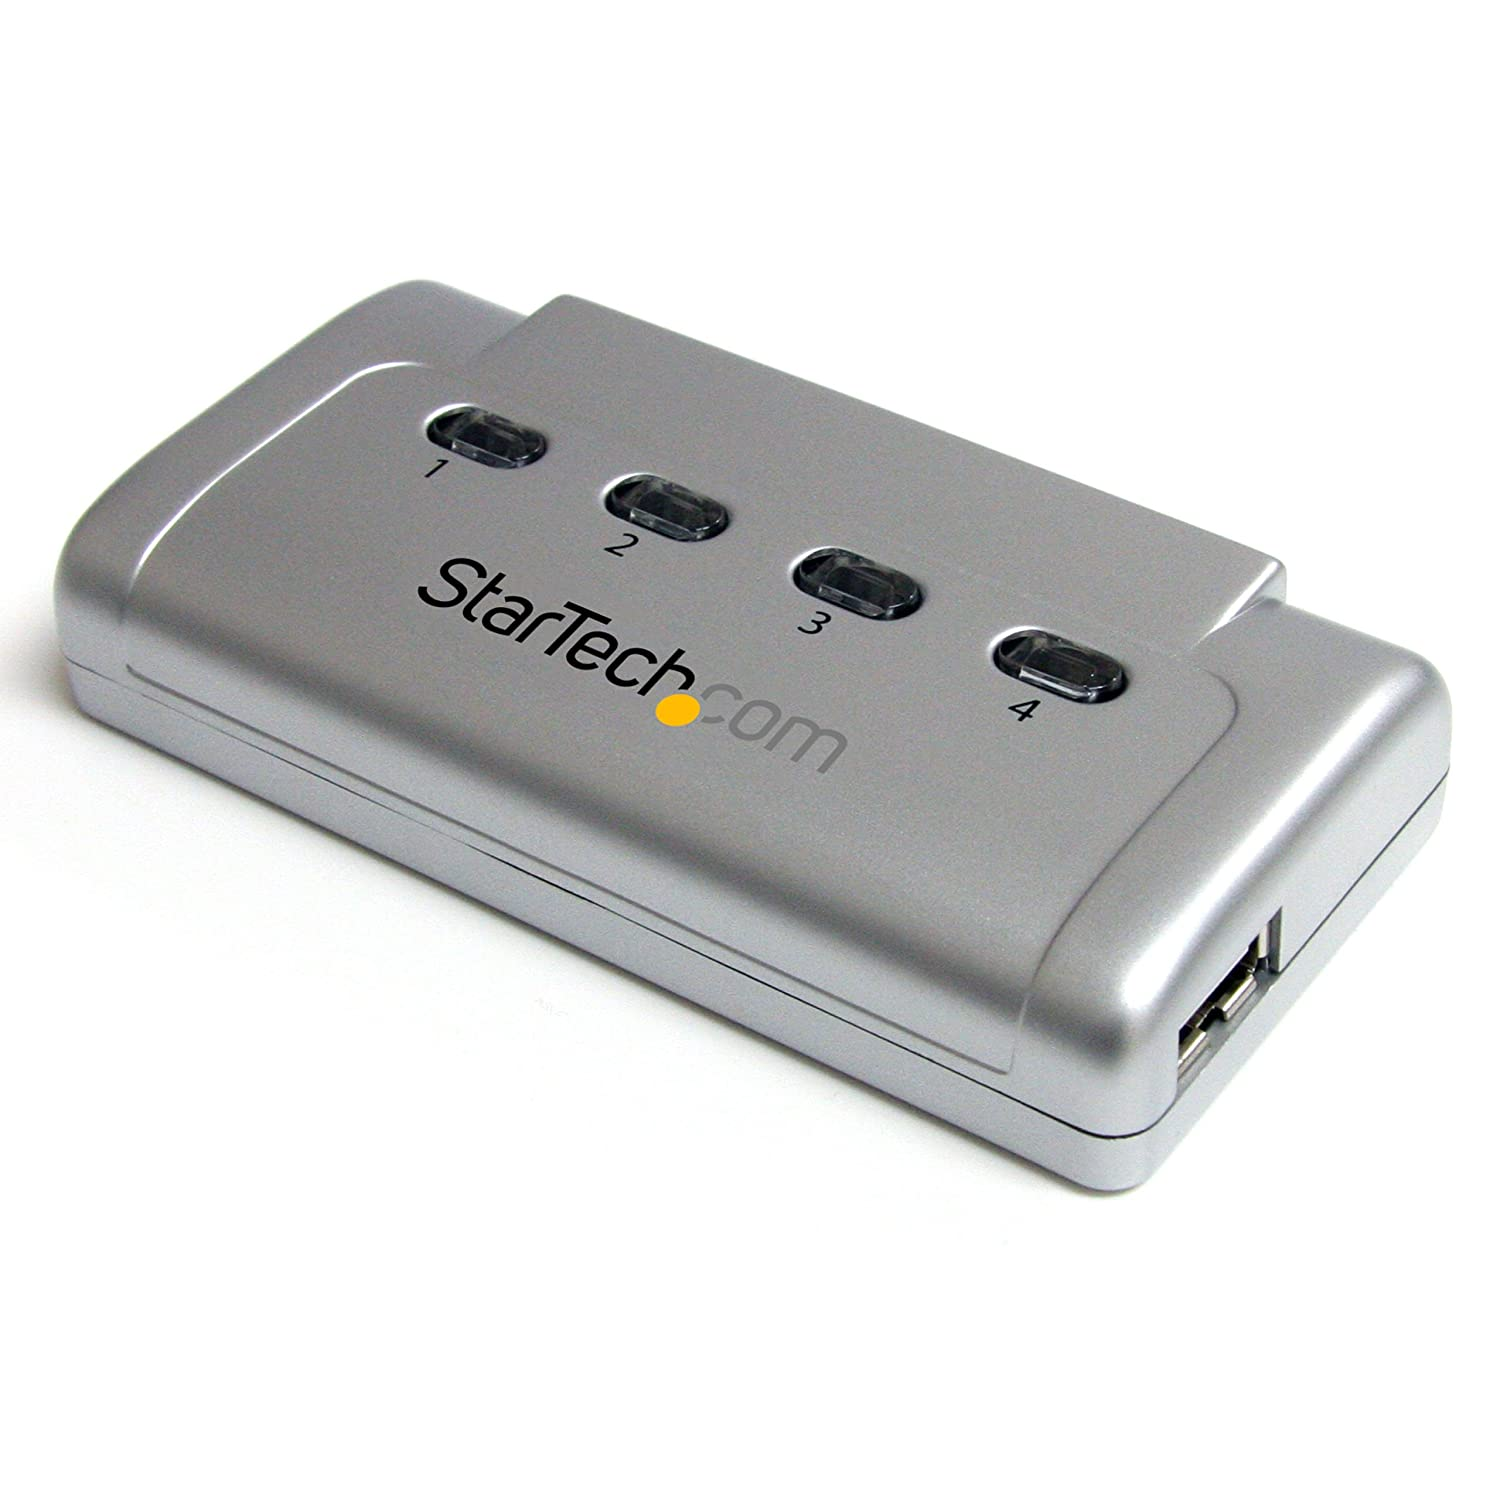 StarTech.com USB421HS 4 to 1 USB 2.0 Peripheral Sharing Switch Switching Devices